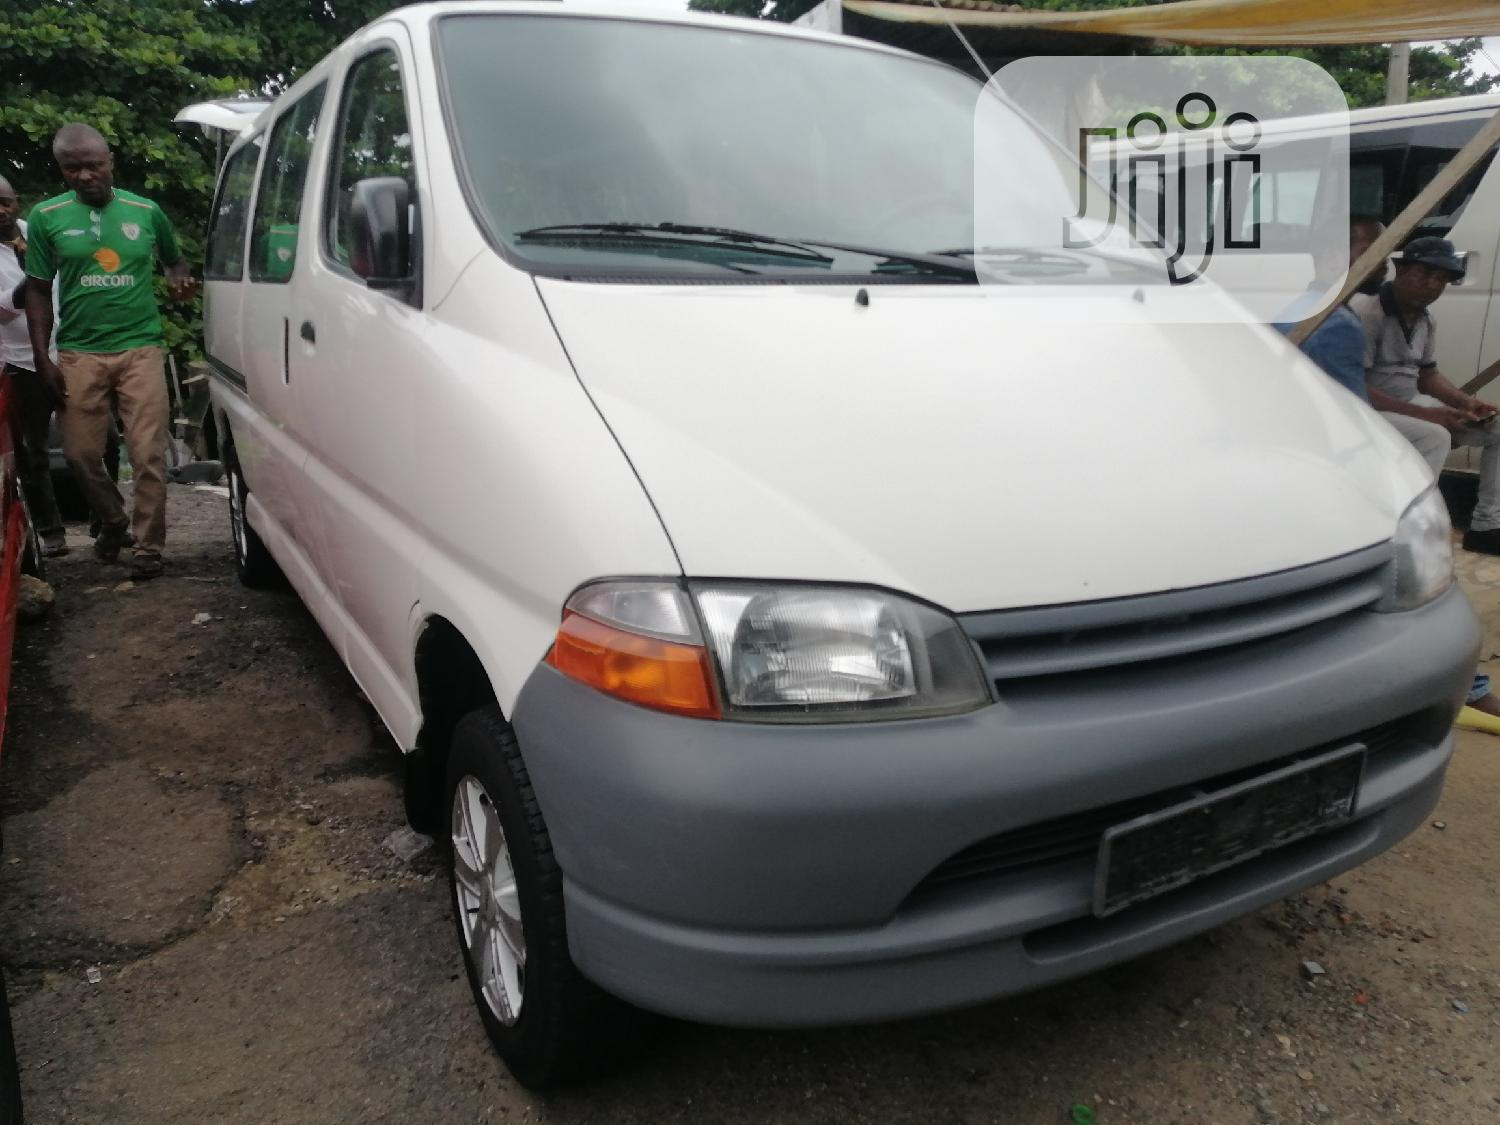 Toyota Hiace Bus White Colour Long Body Accidents Free